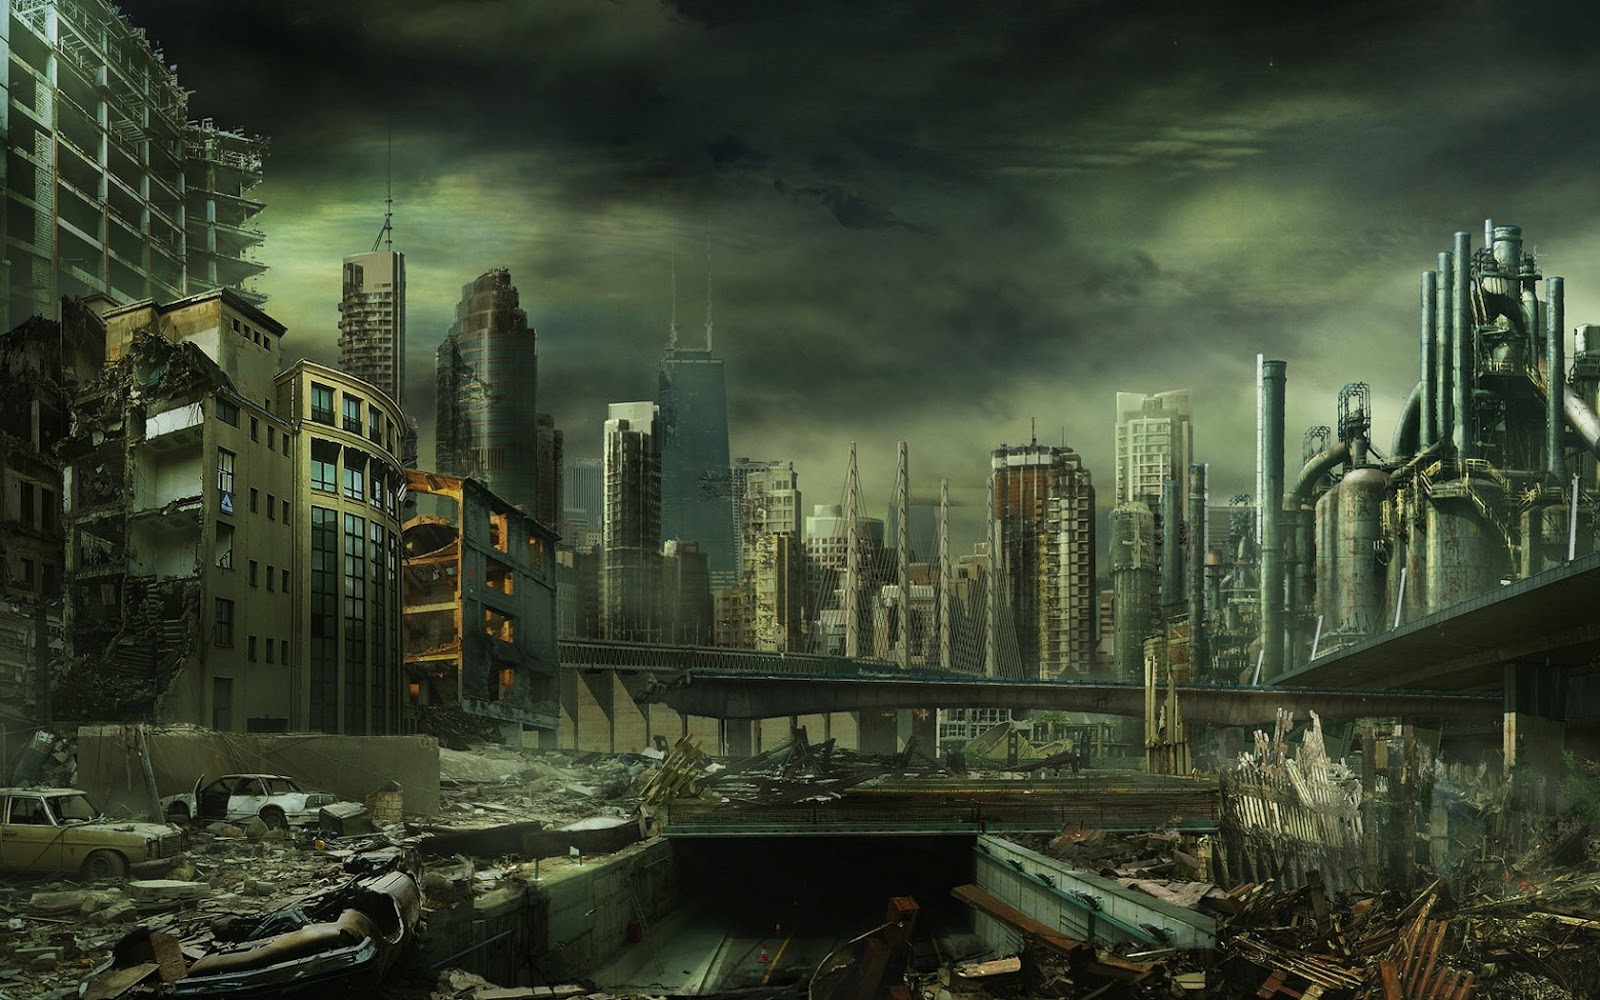 http://2.bp.blogspot.com/-Q3G1cft7FZM/UPJc5GALW8I/AAAAAAAAAMA/cUxoY1w2BX0/s1600/destroy-city-view-with-black-clouds-background-cartoon-hd-wallpapers-1680-x-1050.jpg